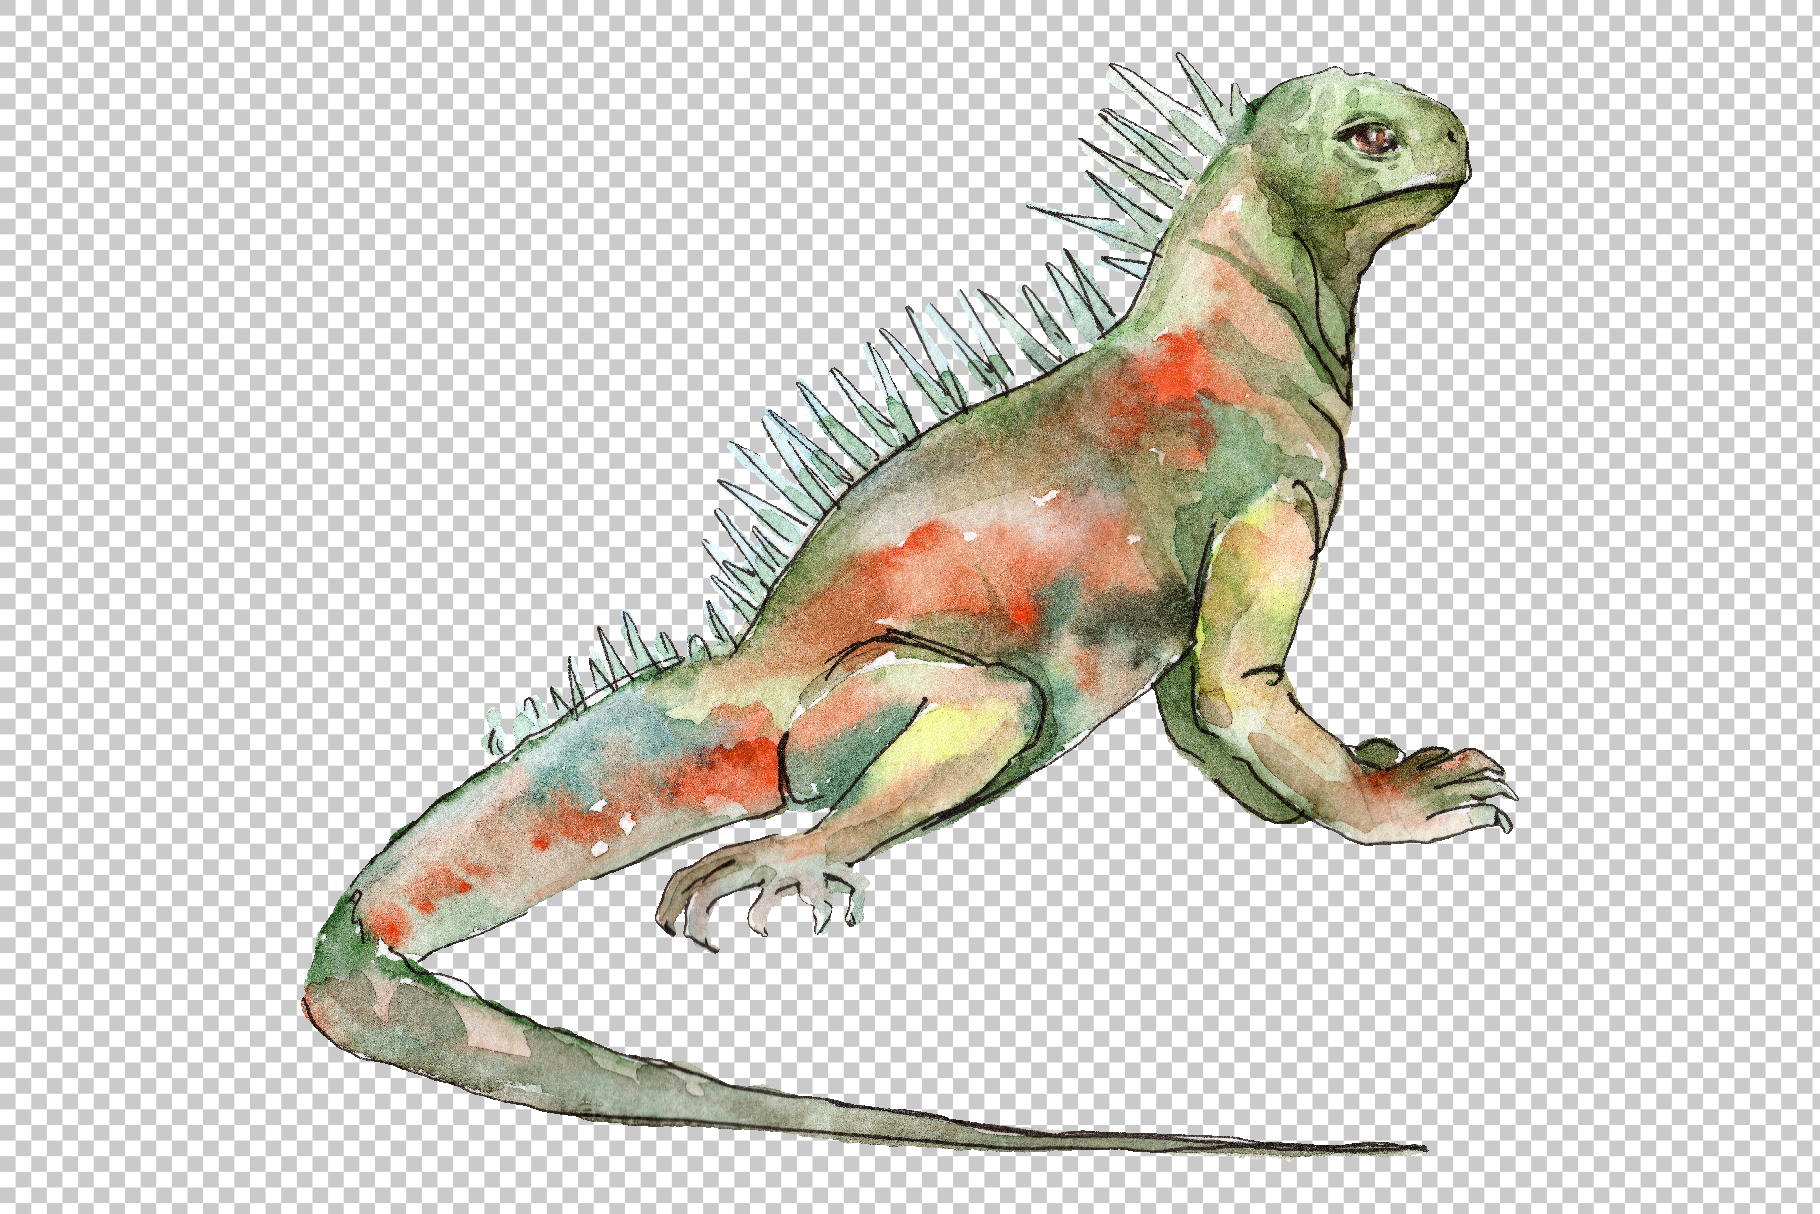 4 iguanas Watercolor png example image 4